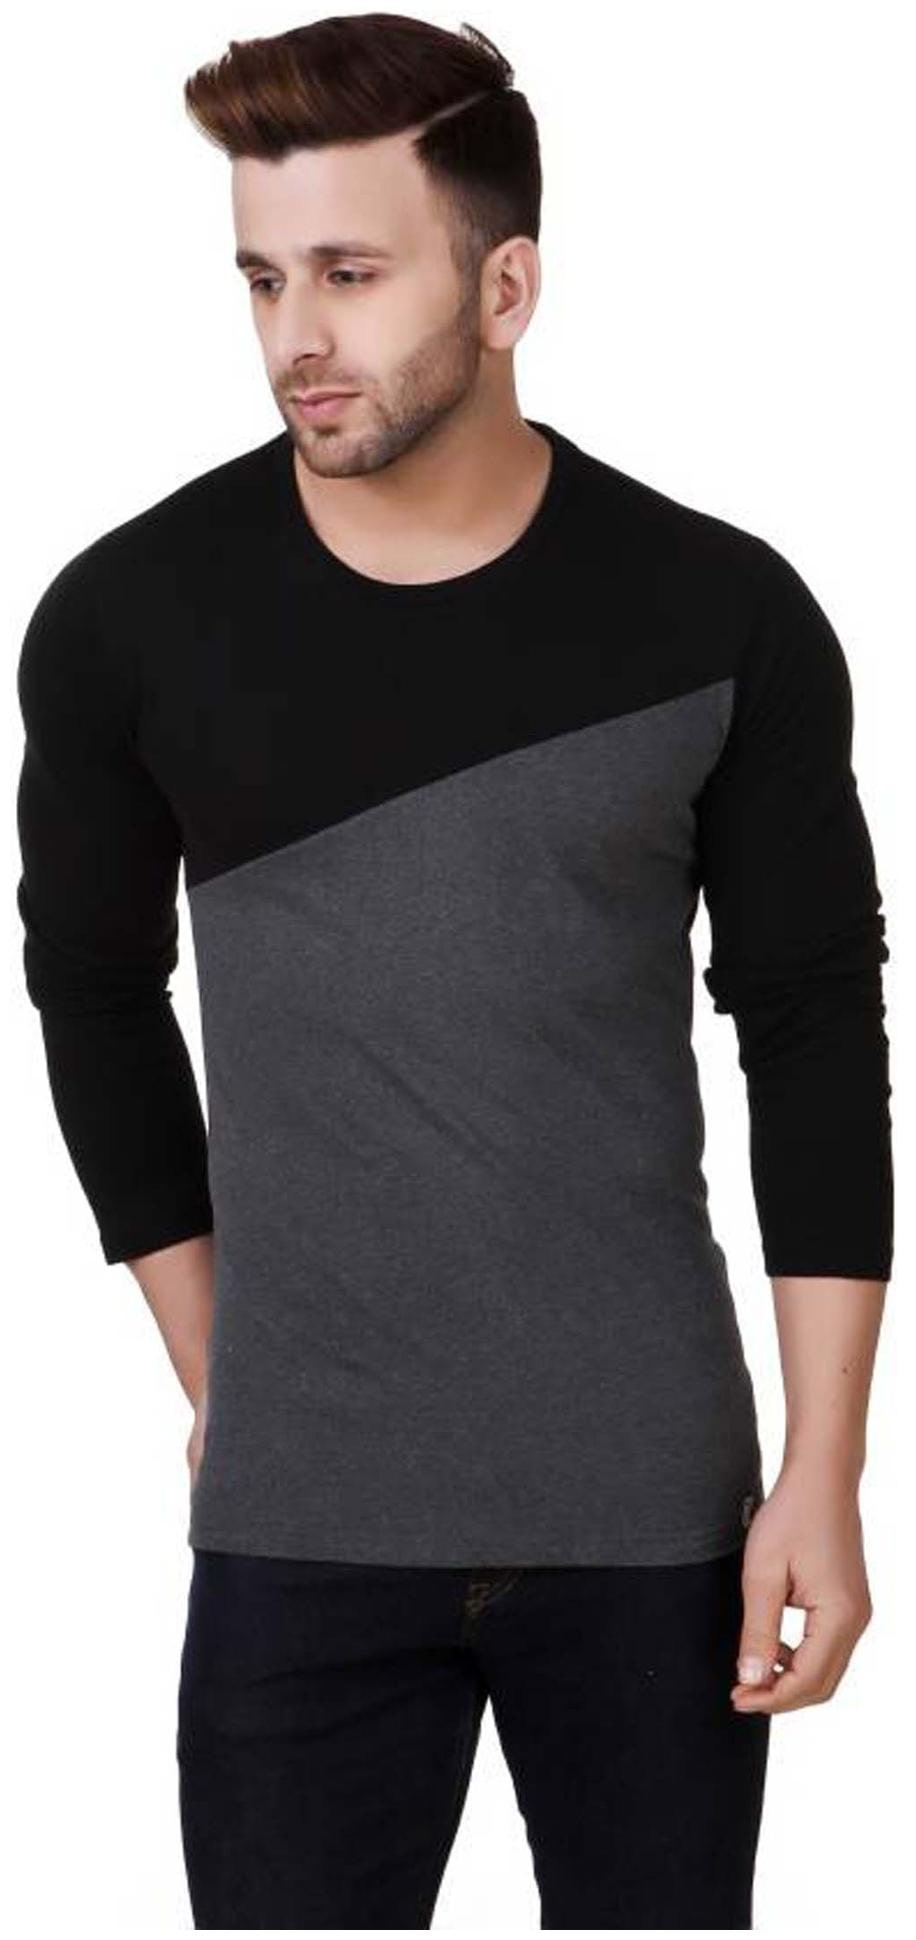 dd838fcda8d3 T shirts for Men - Buy Branded T-shirts